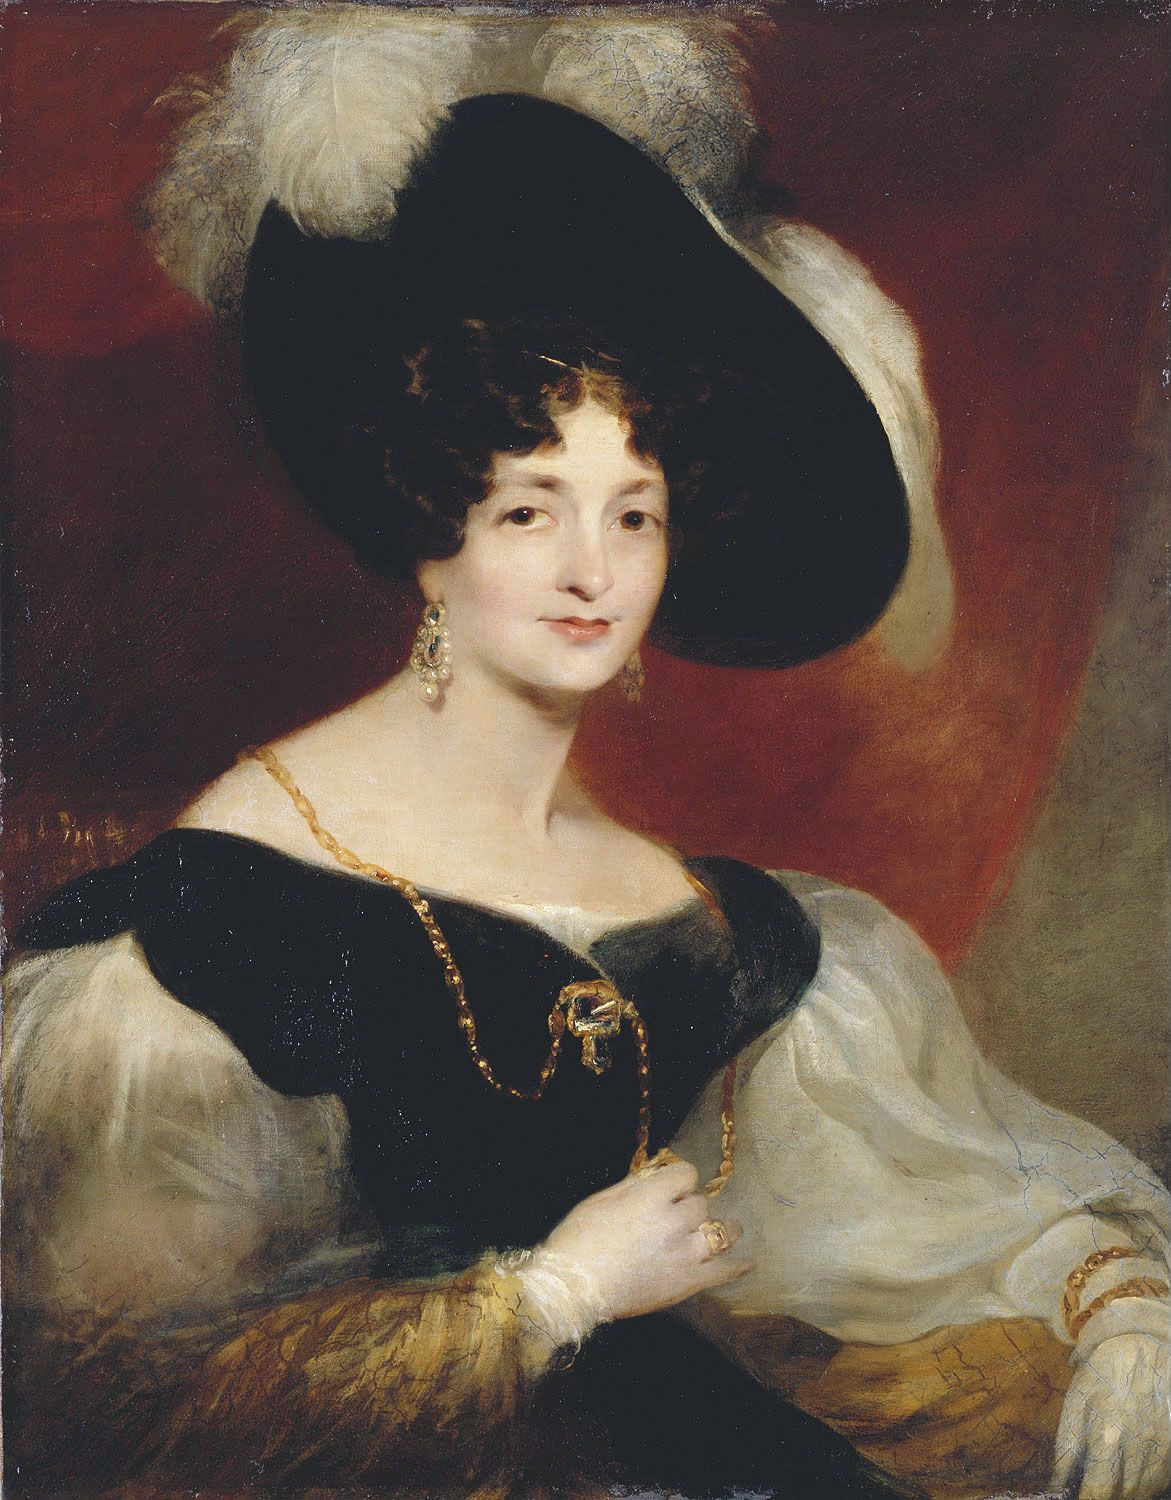 Portrait of Victoria, Duchess of Kent by Richard Rothwell, 1832